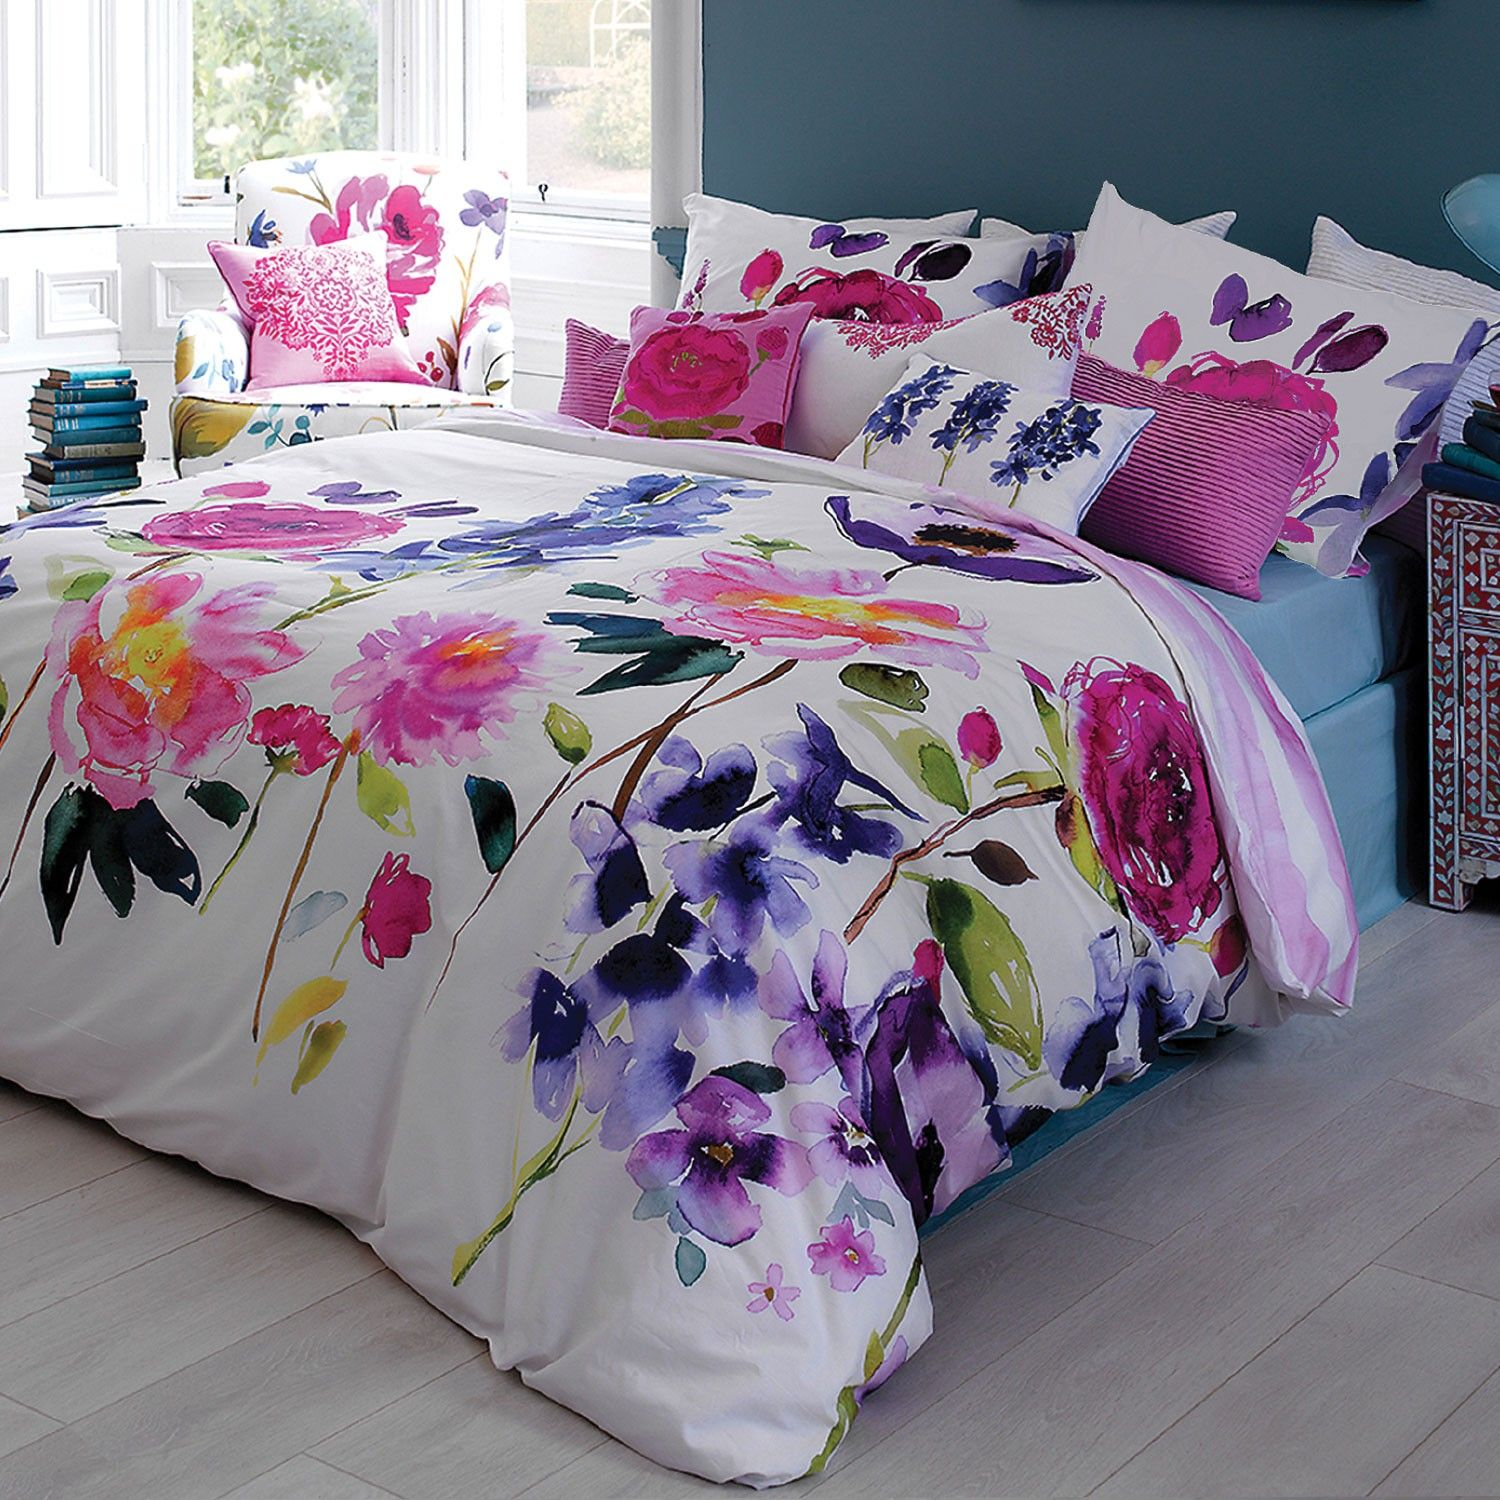 Floral cotton bed sheets - Taransay Duvet Cover Floral Bedding Bluebellgray